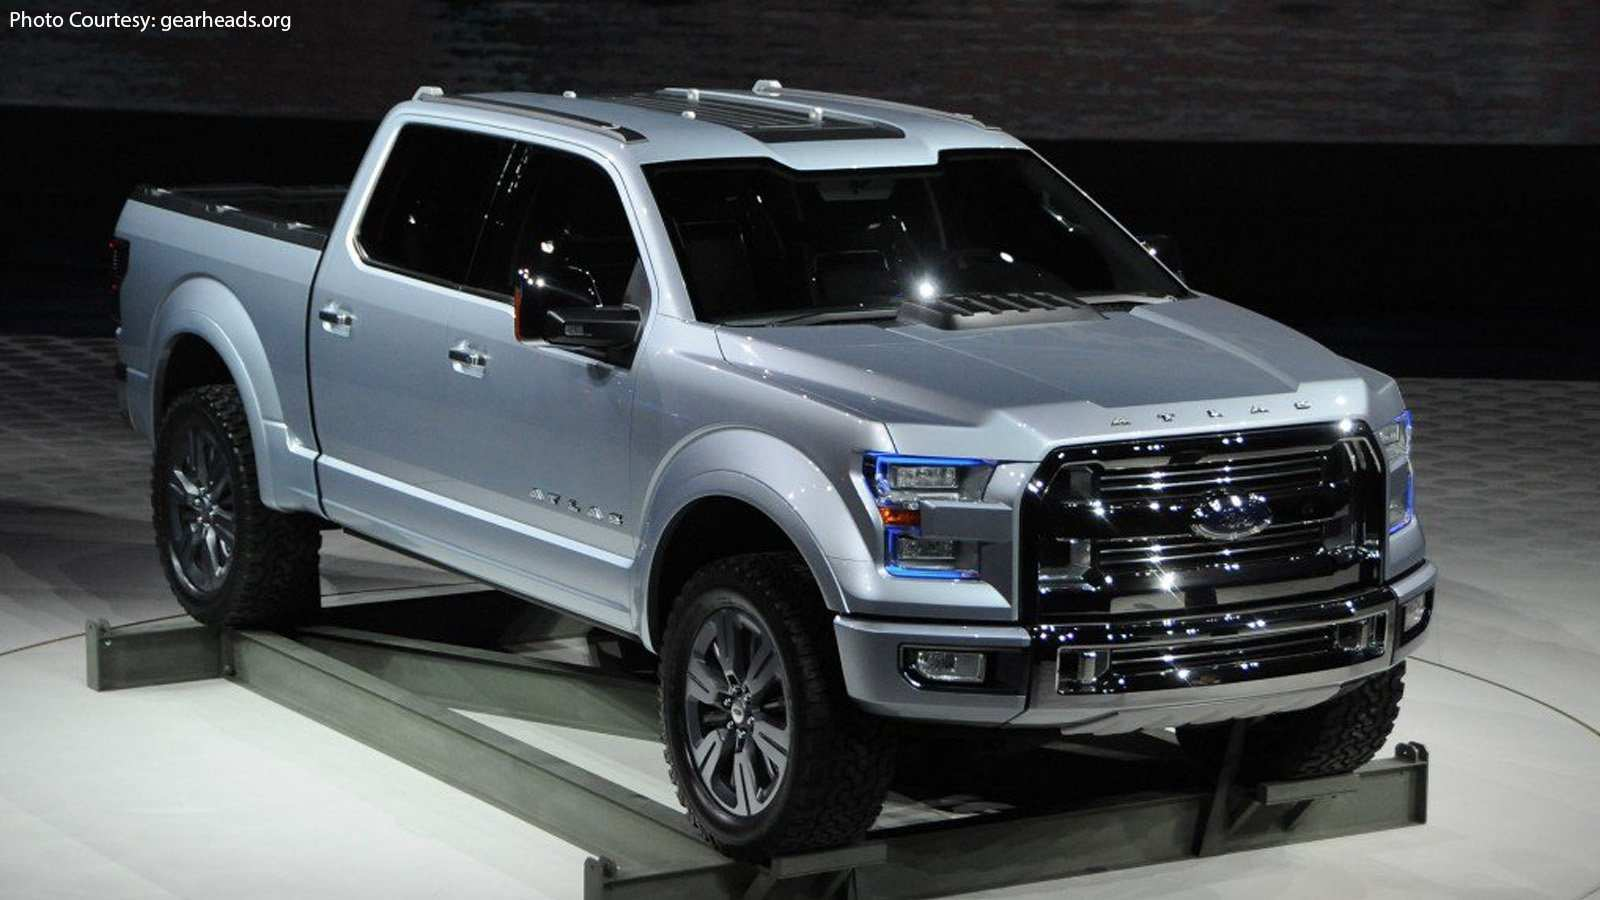 45 Best Review Ford F 150 Hybrid 2020 Exterior for Ford F 150 Hybrid 2020